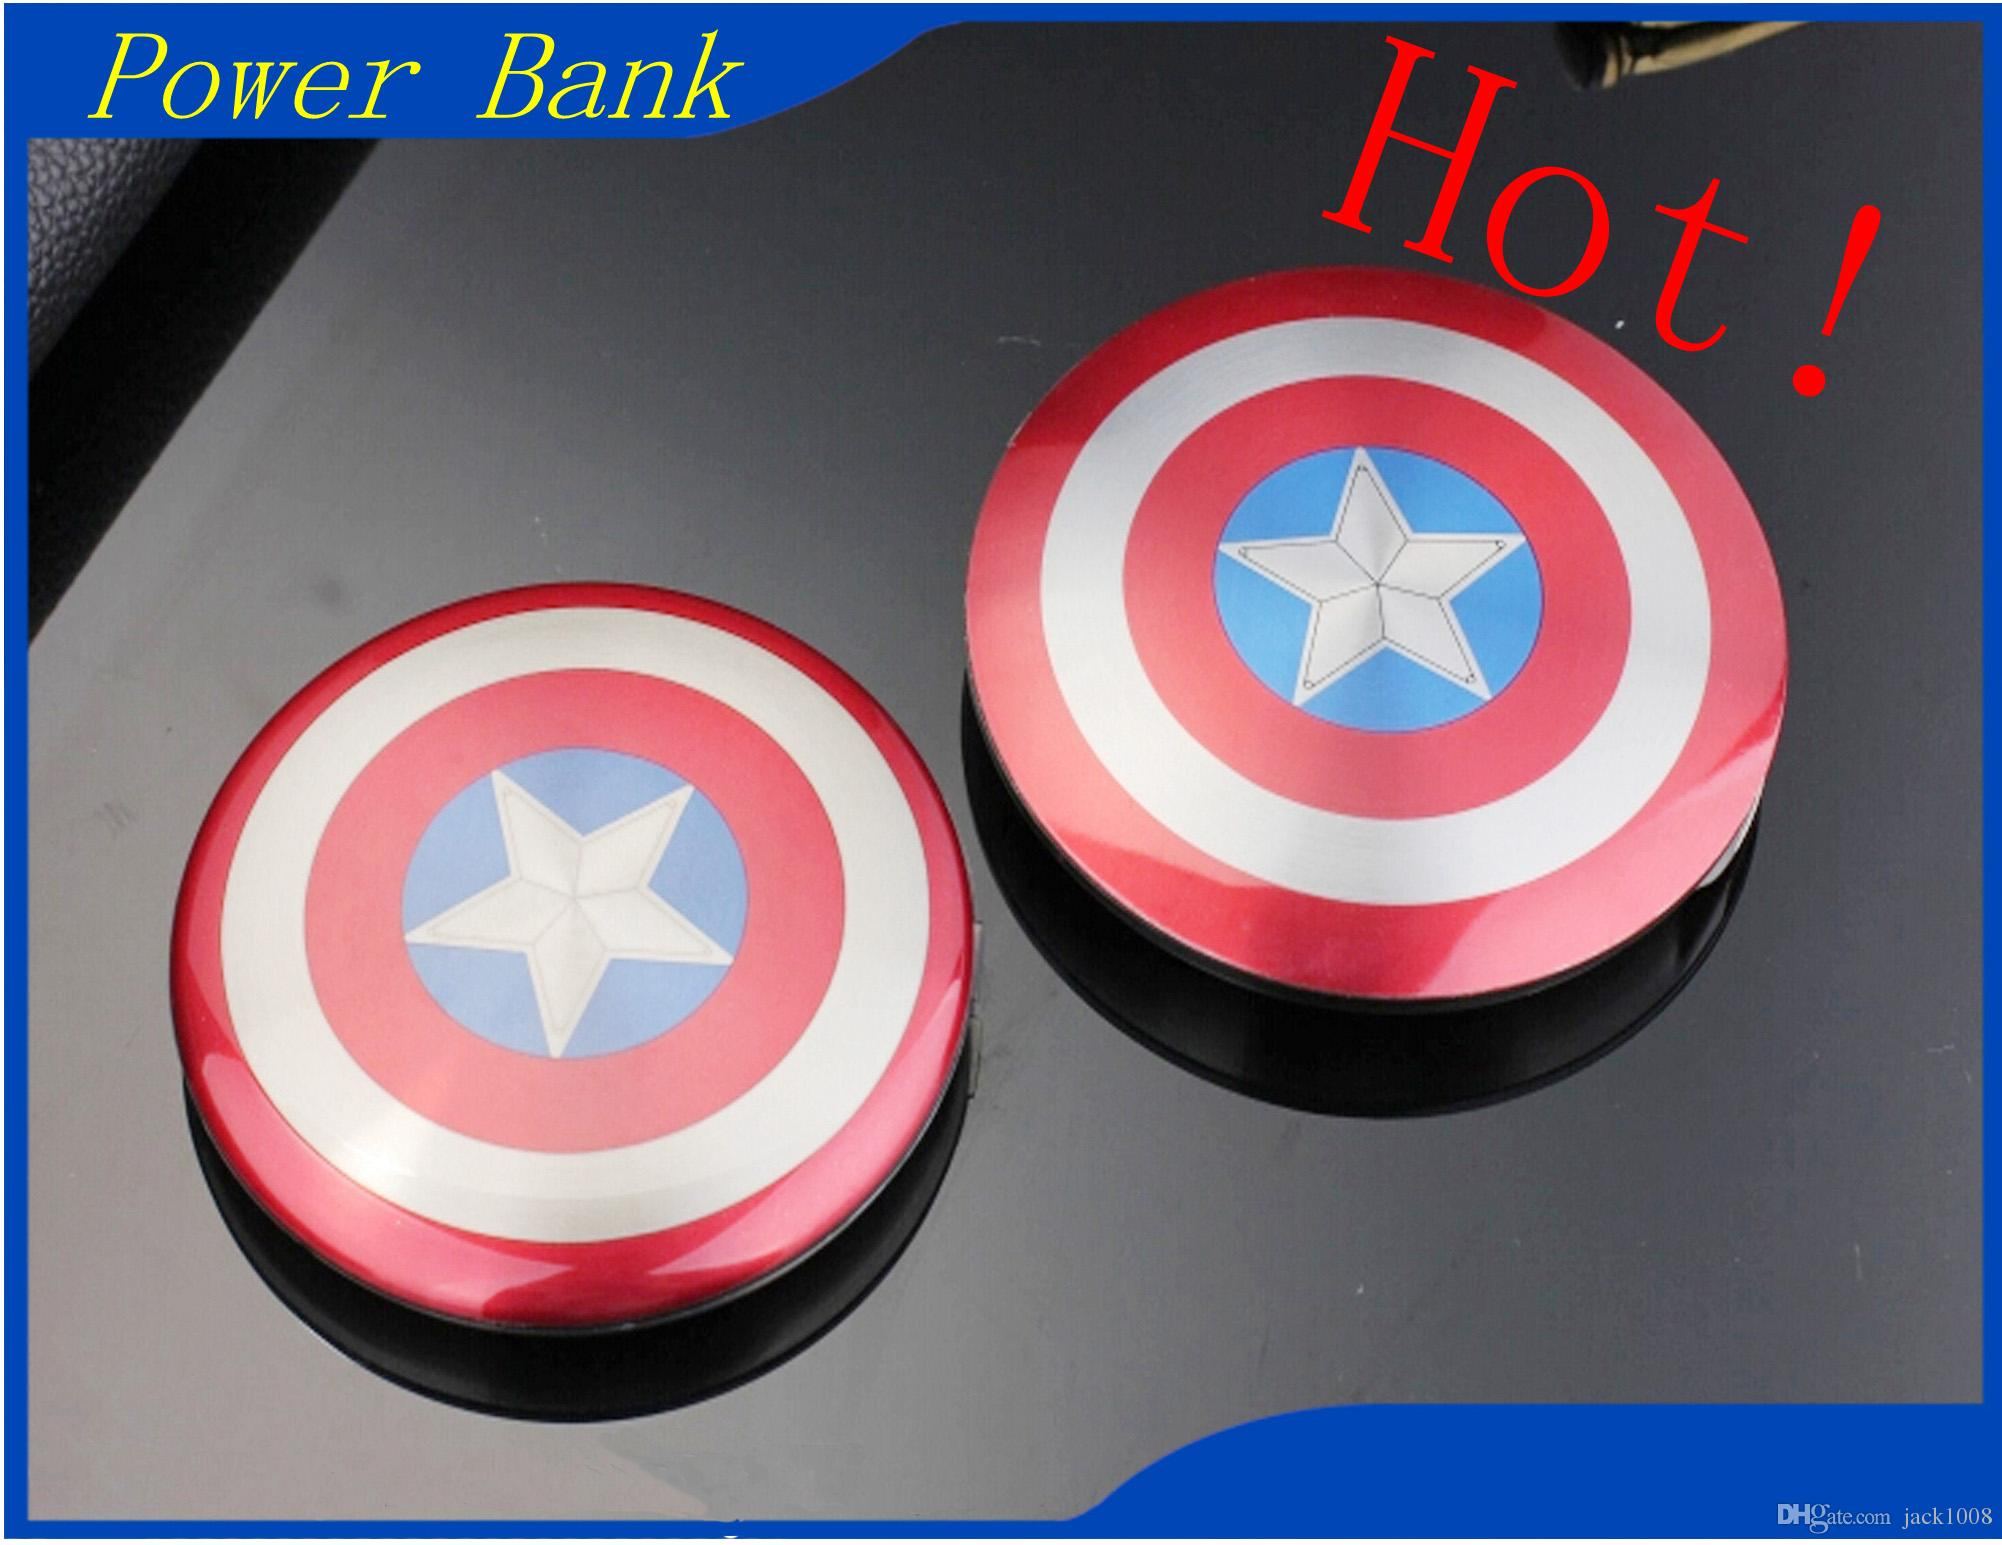 2e696dd7be672e 2019 2017 Hot Sale Wholesale High Quality Portable Power Bank Popular Captain  America Avenger 6800mah Double USB For Mobile Phone From Jack1008, ...